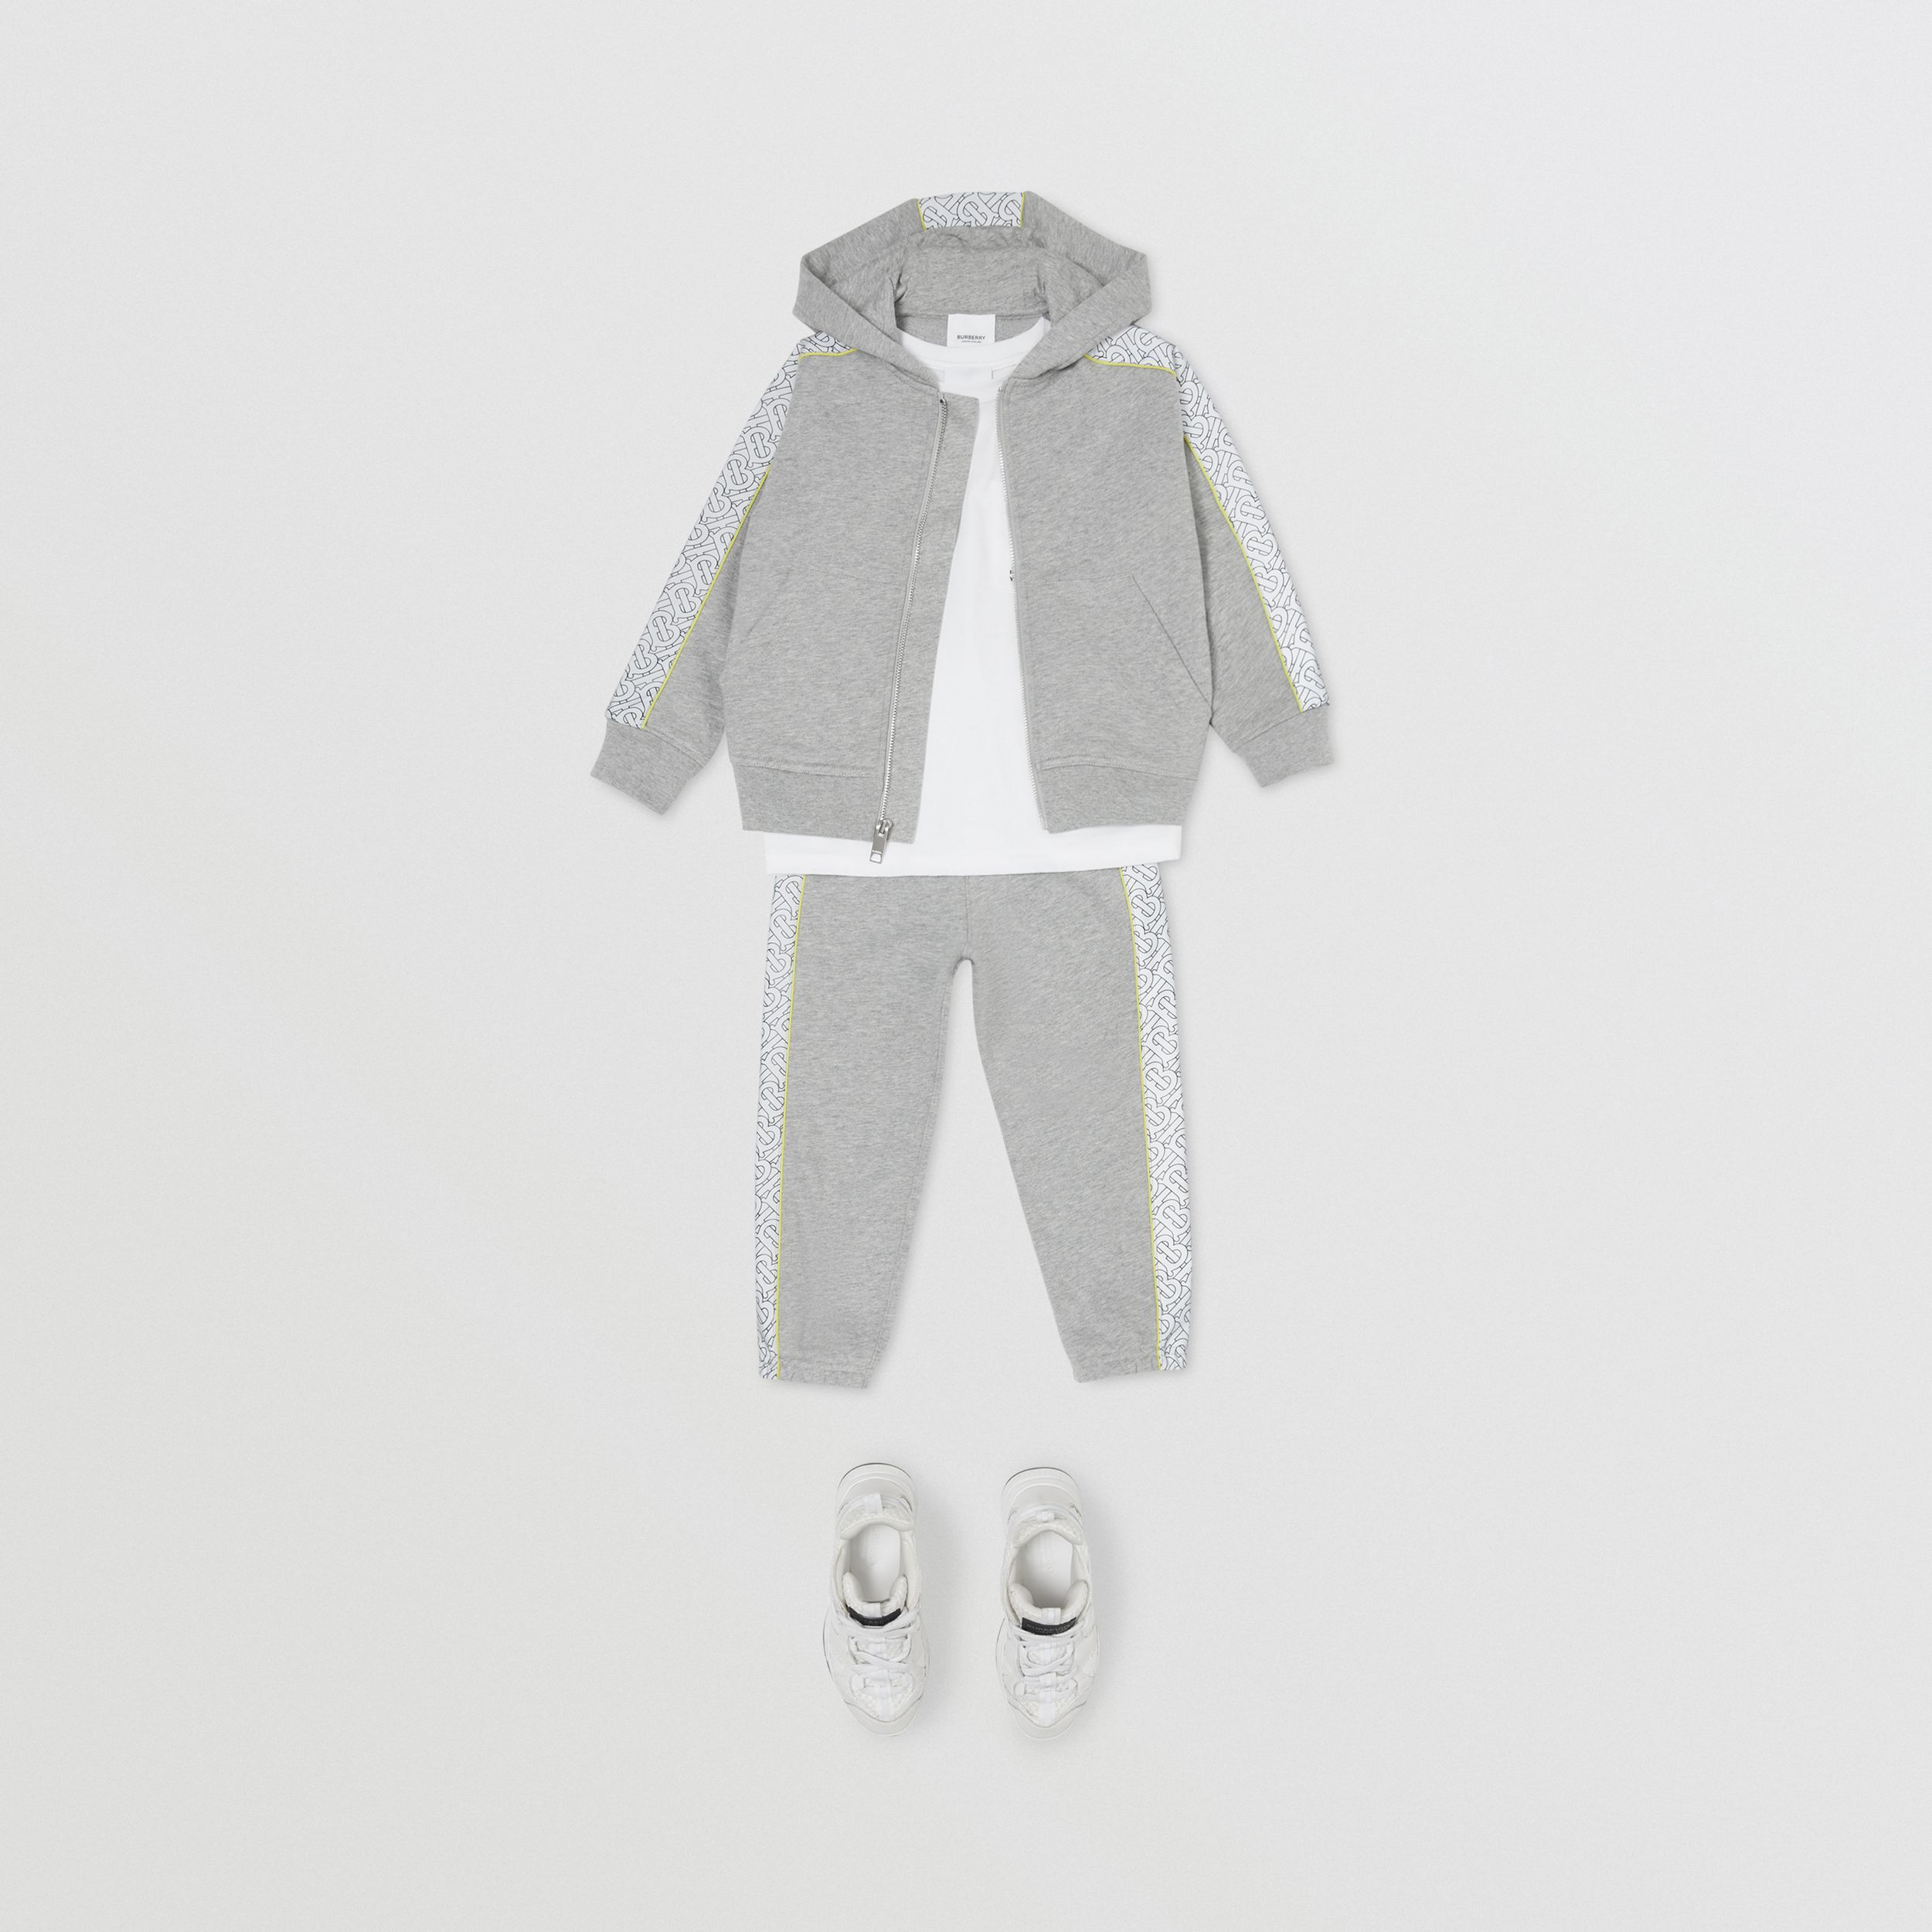 Monogram Print Panel Cotton Hooded Top in Grey Melange - Children | Burberry - 3